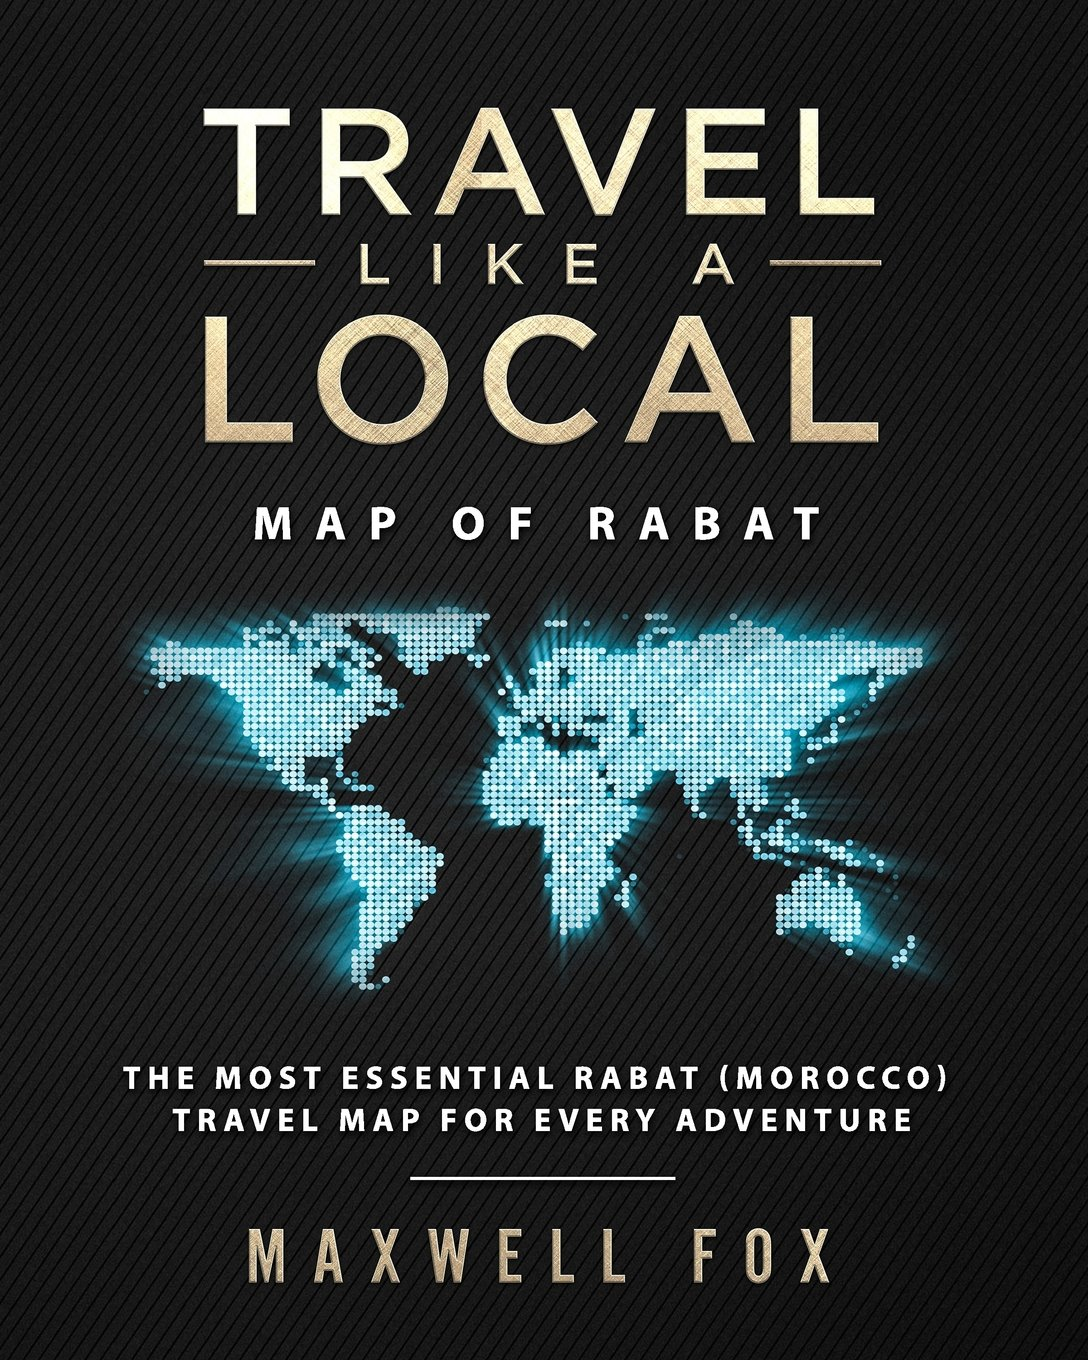 Travel Like a Local - Map of Rabat: The Most Essential Rabat (Morocco) Travel Map for Every Adventure PDF